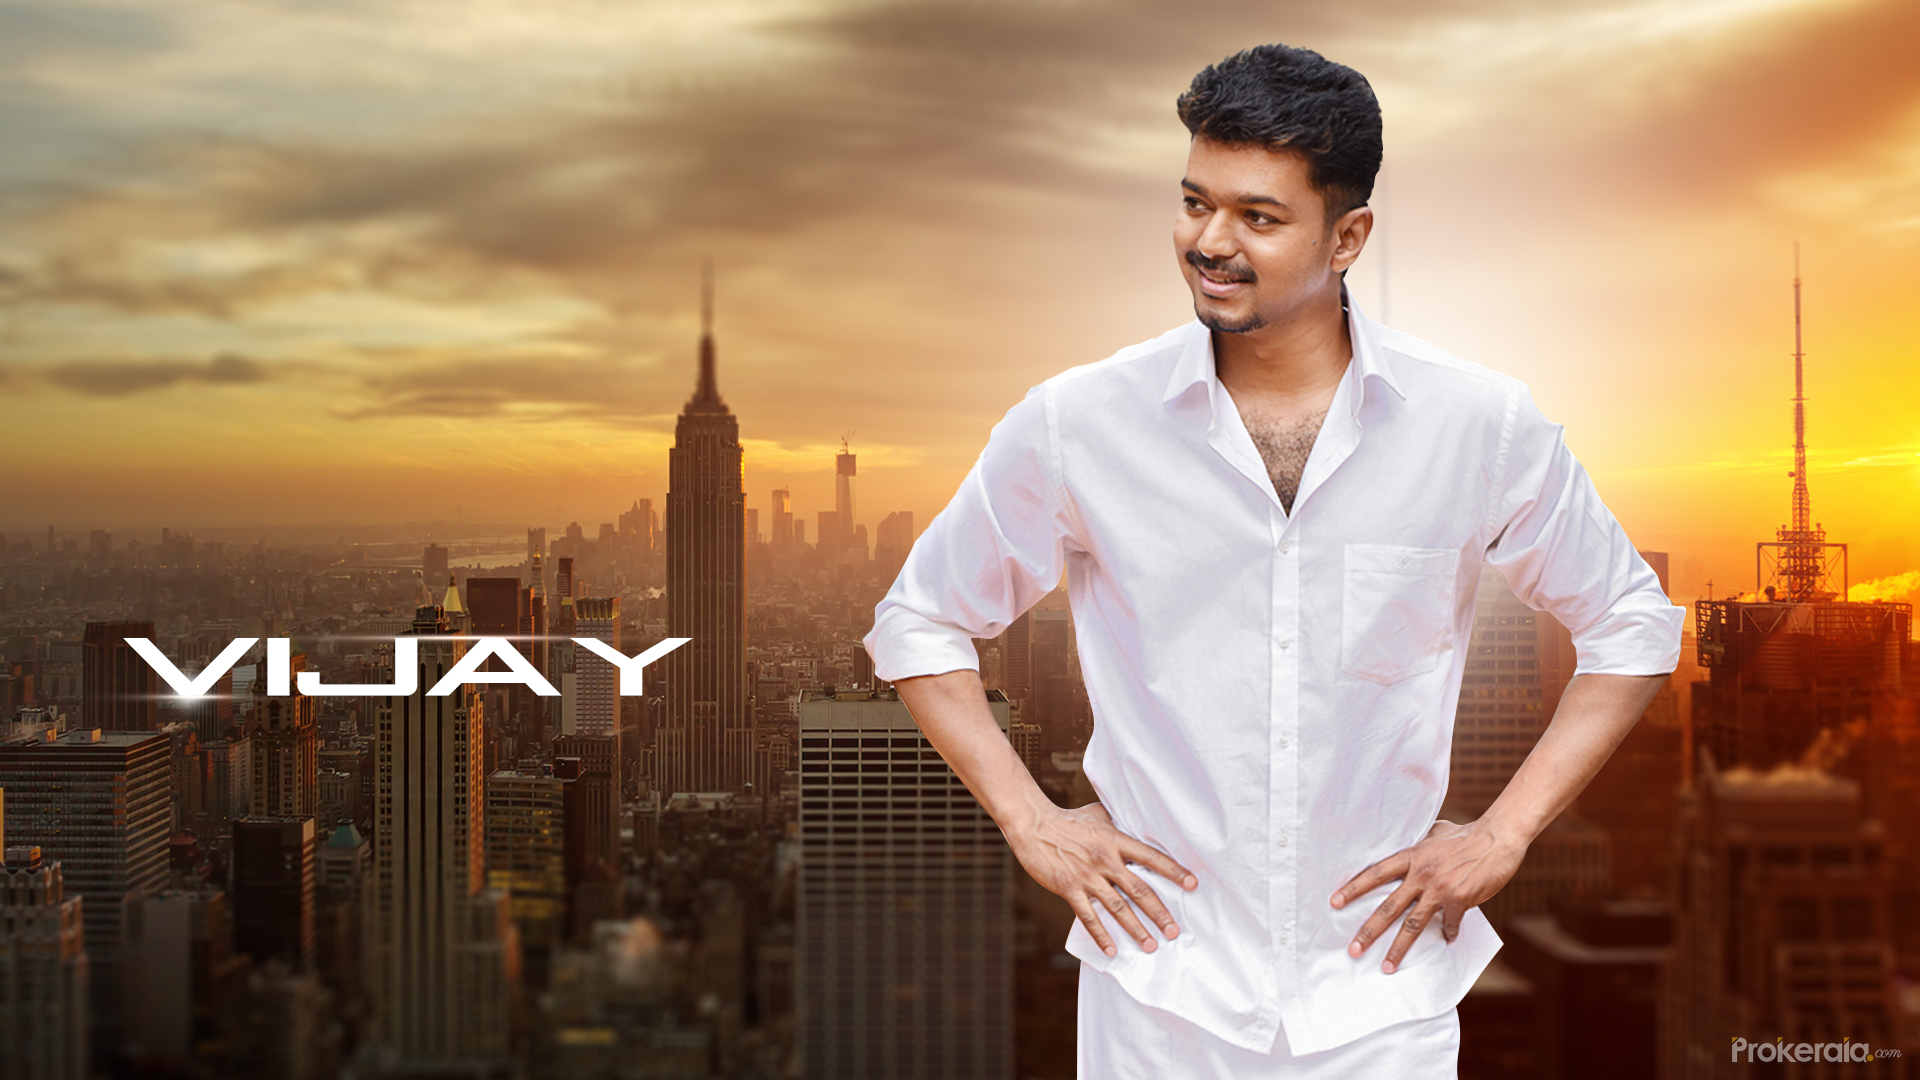 Vijay Love Hd Wallpaper : Ilayathalapathy Vijay Wallpaper